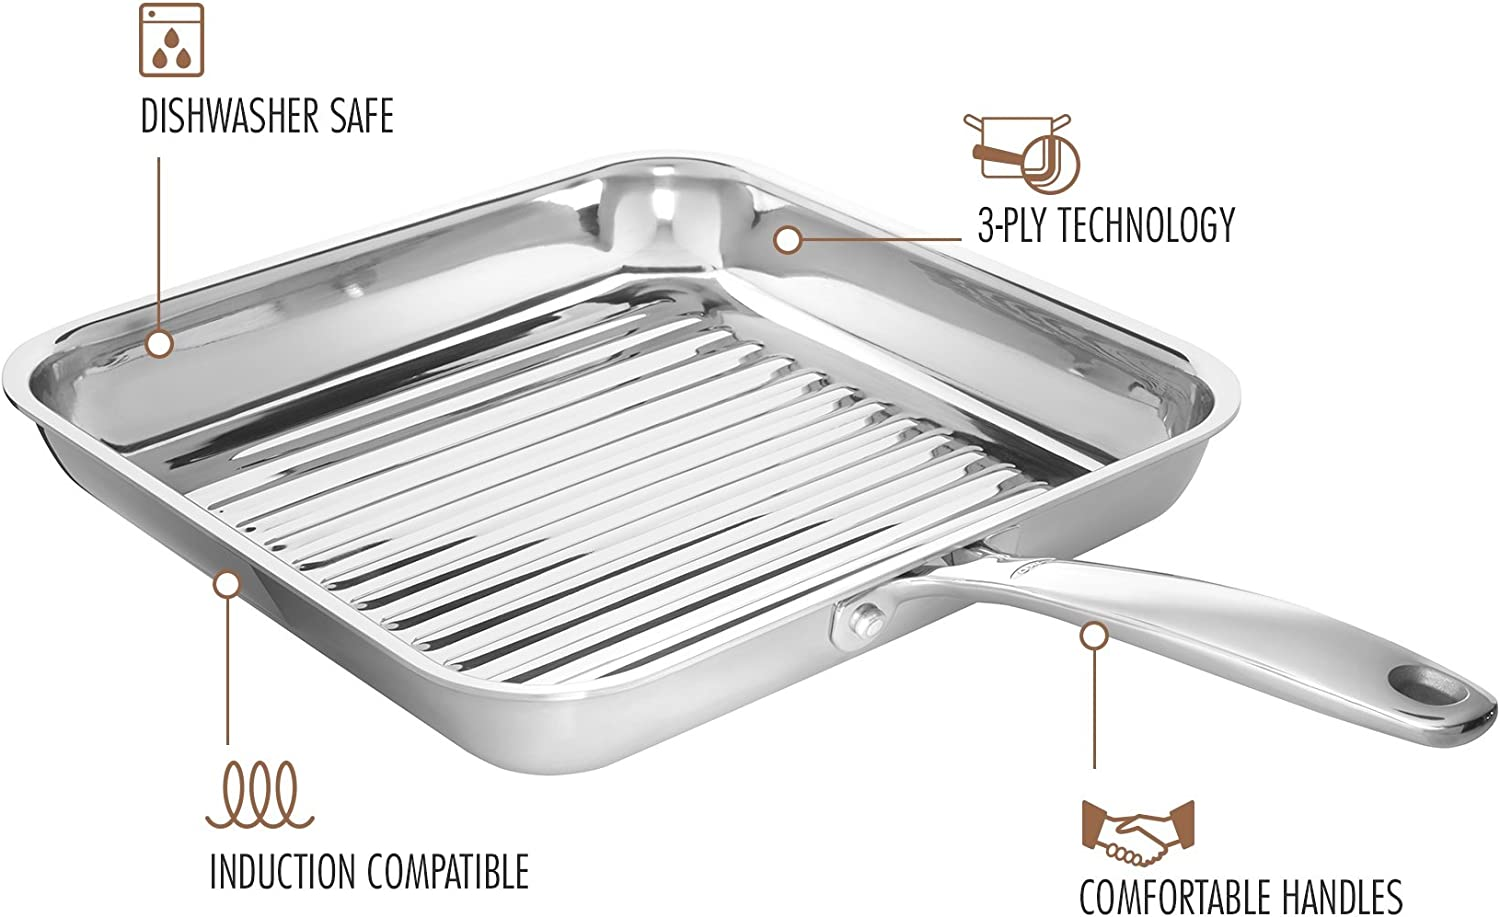 OXO Good Grips Tri-Ply Stainless Steel Pro 11 Square Grillpan